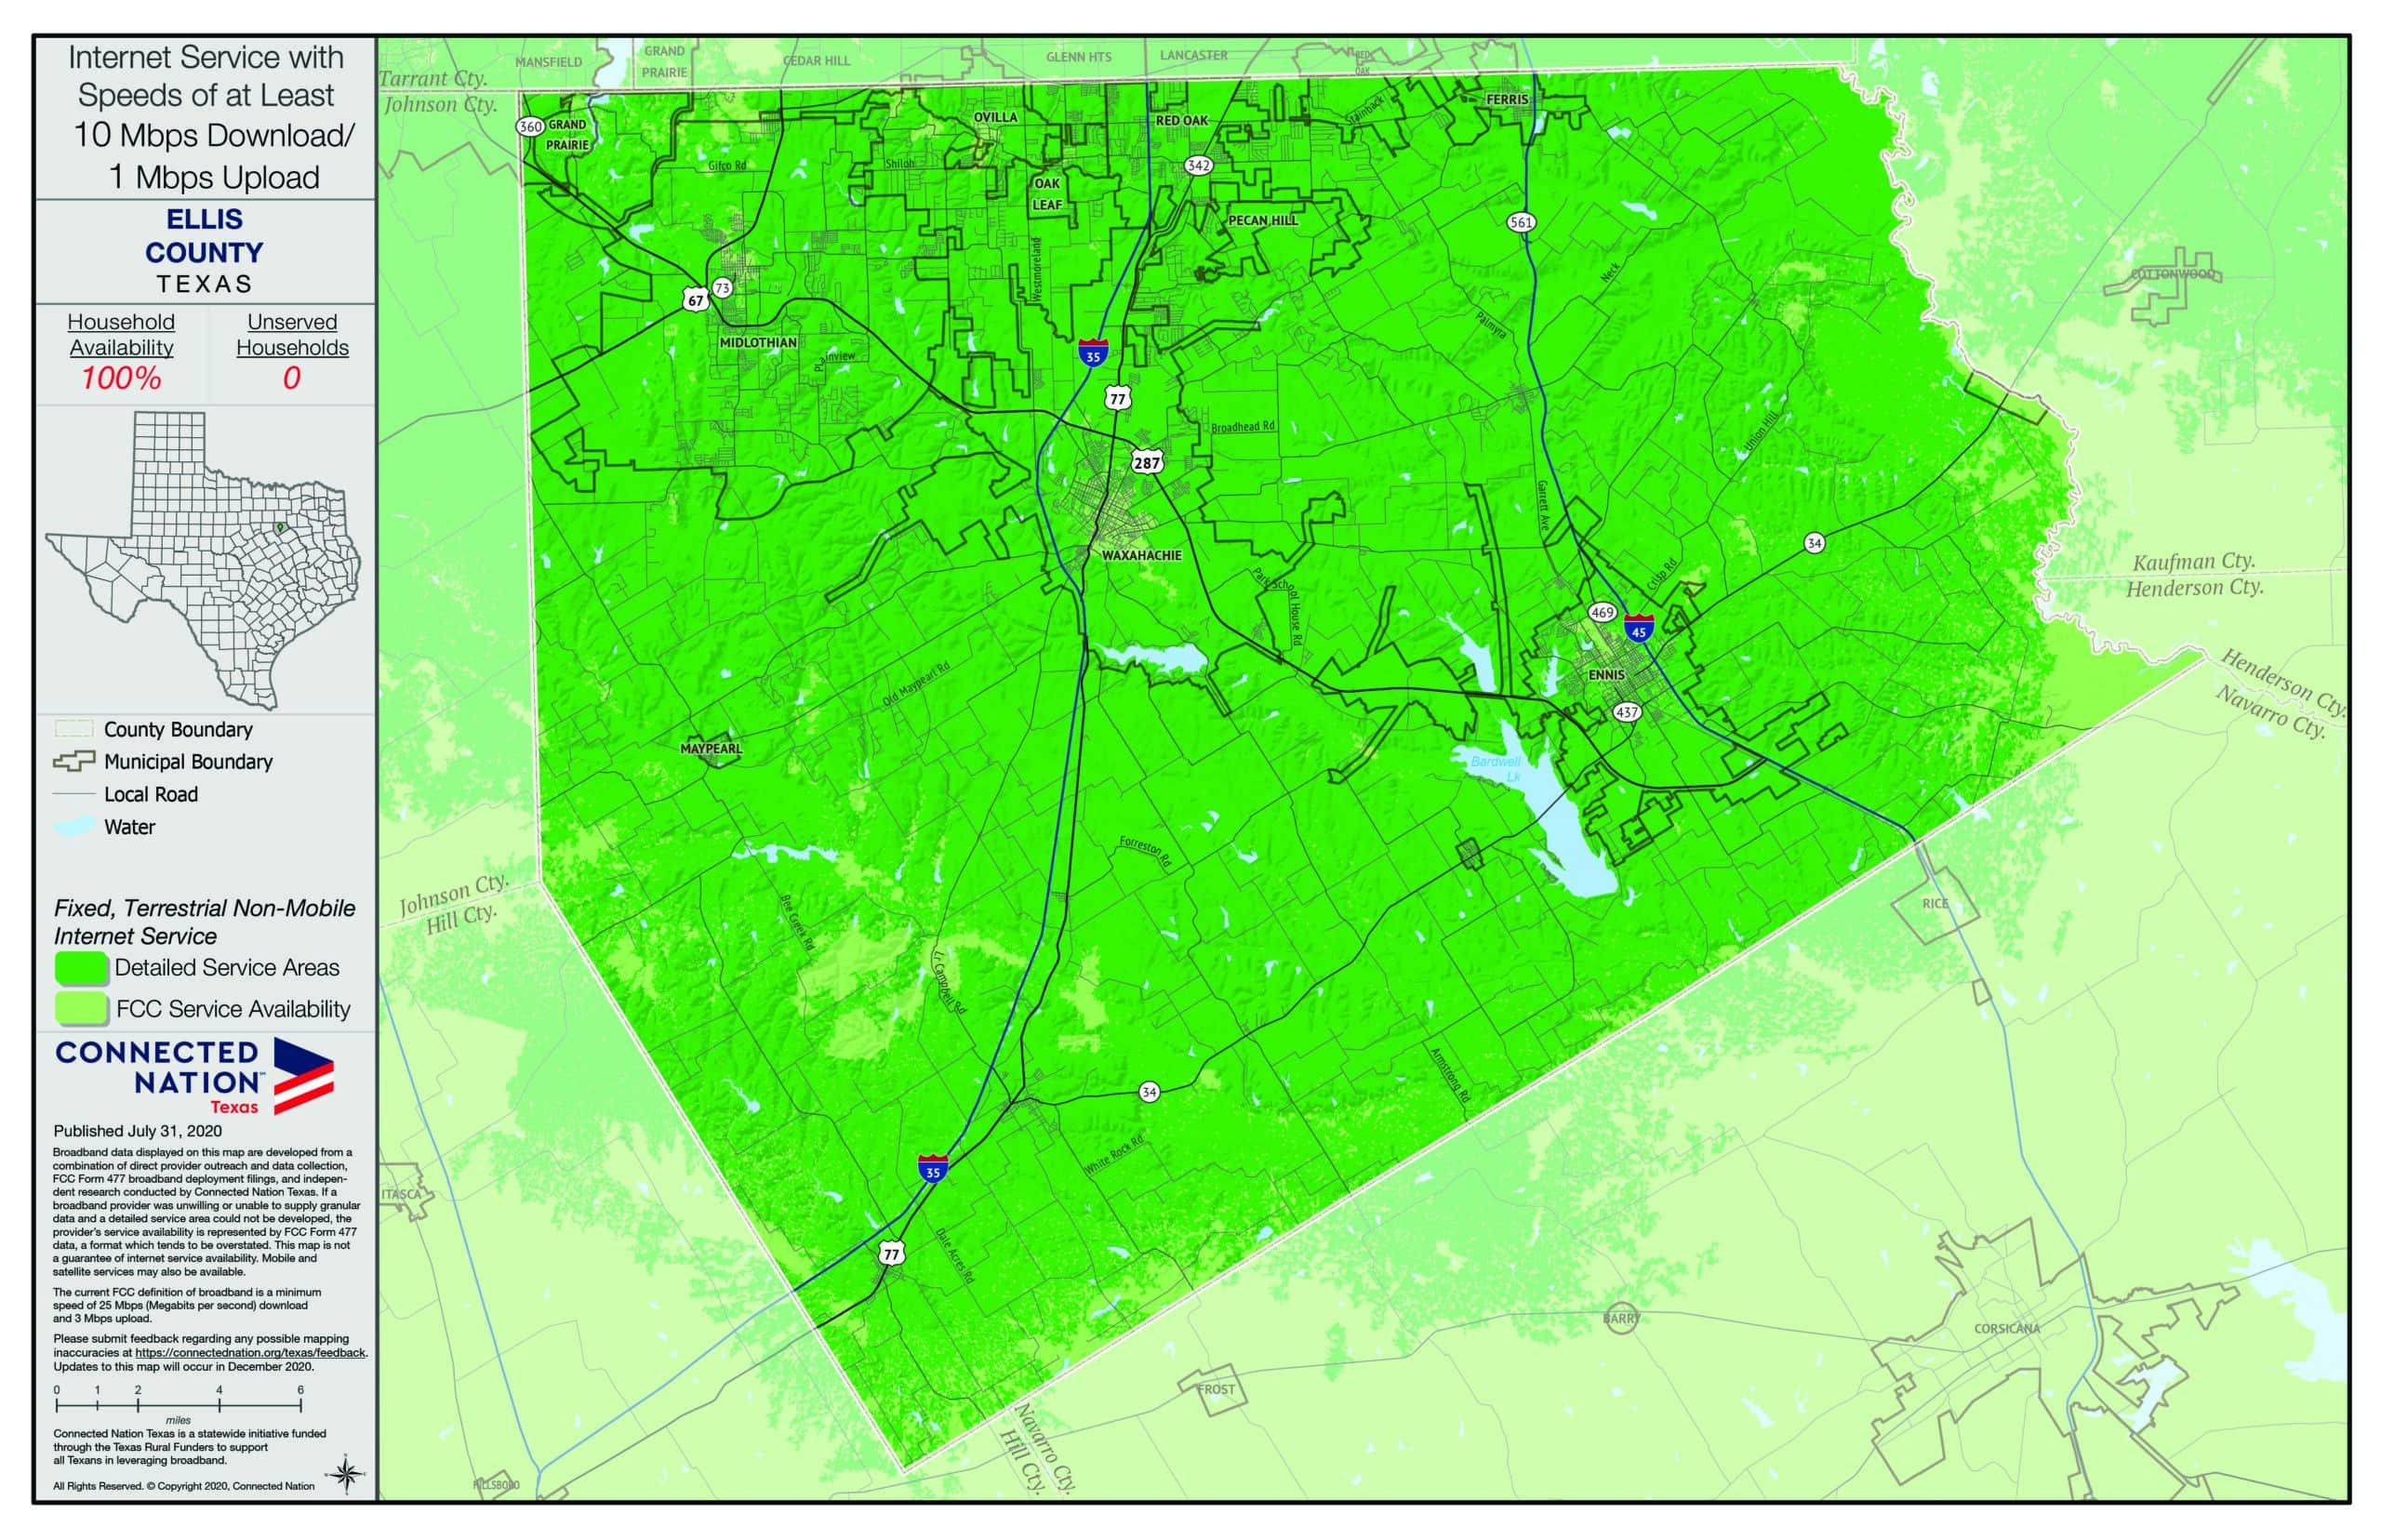 map of broadband coverage in Ellis County